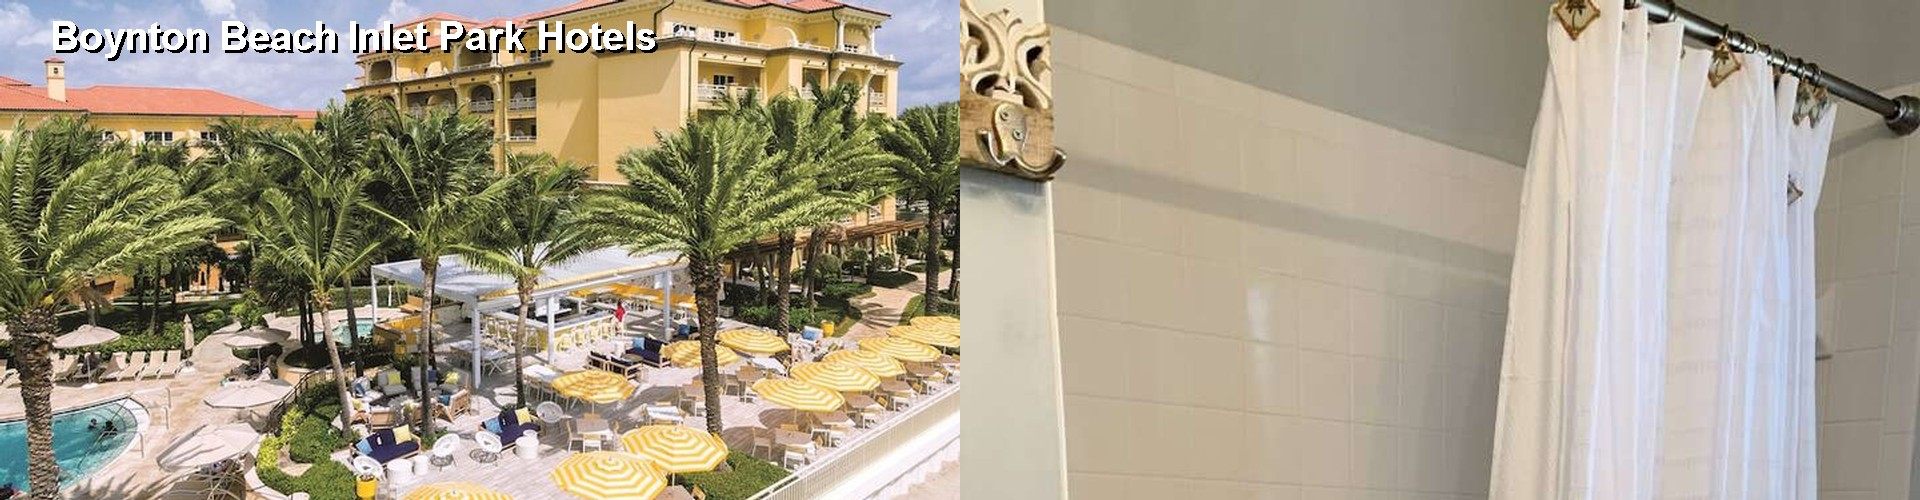 5 Best Hotels near Boynton Beach Inlet Park